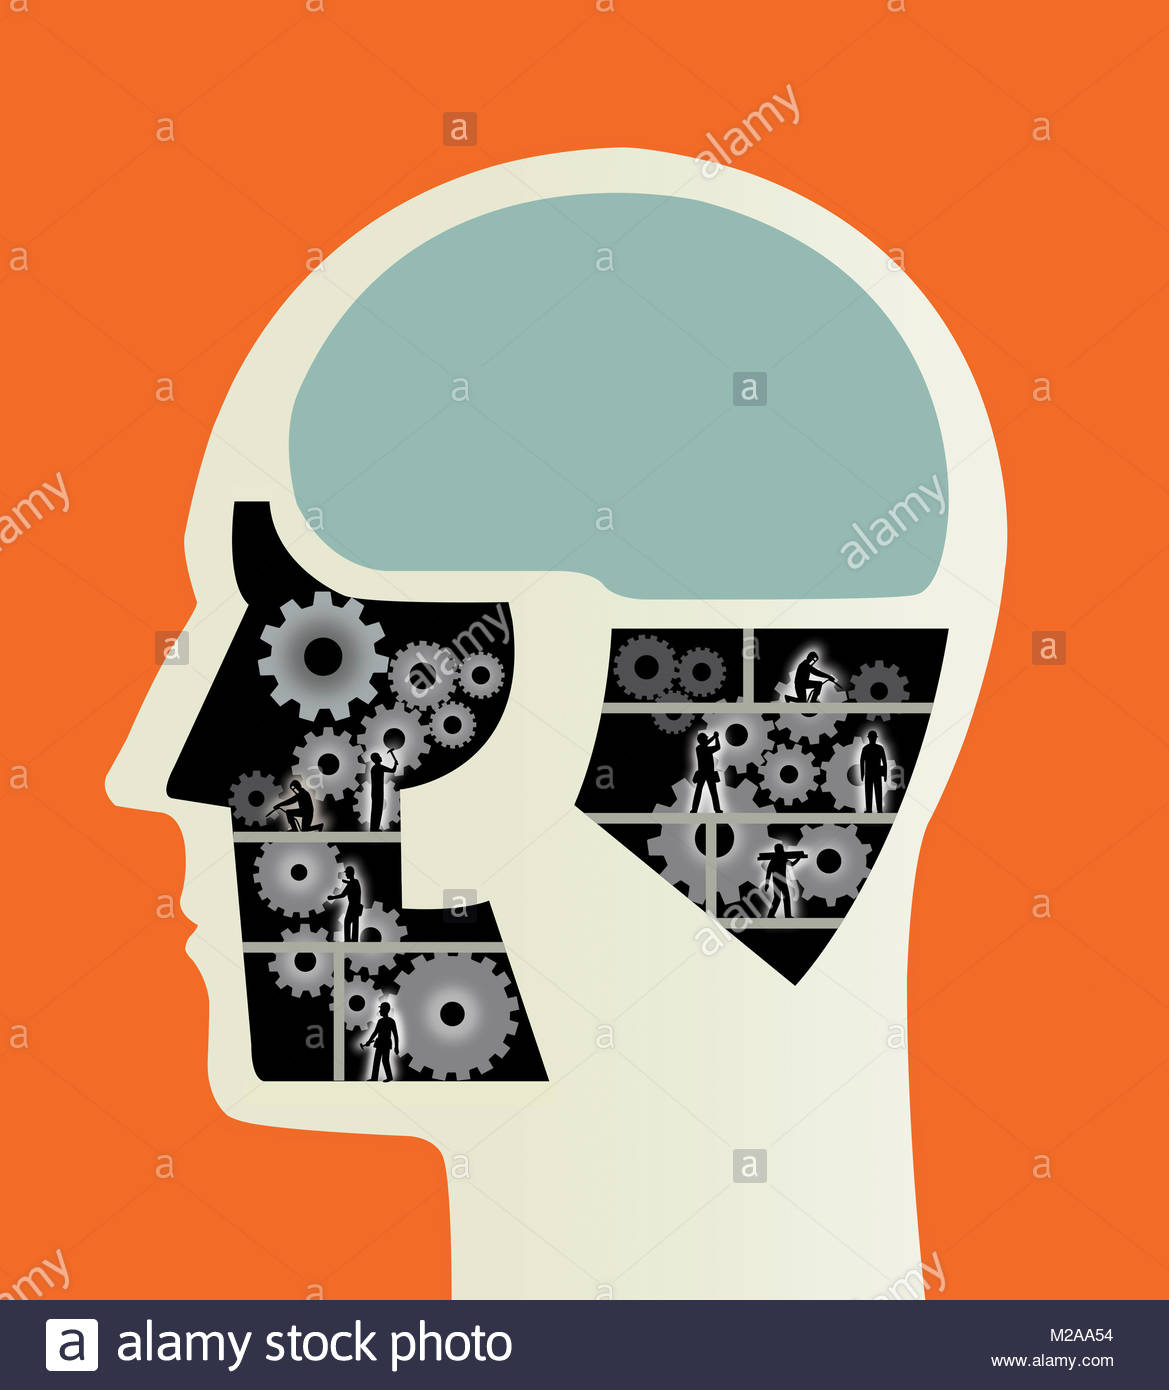 Construction workers working on cogs inside of male head - Stock Image